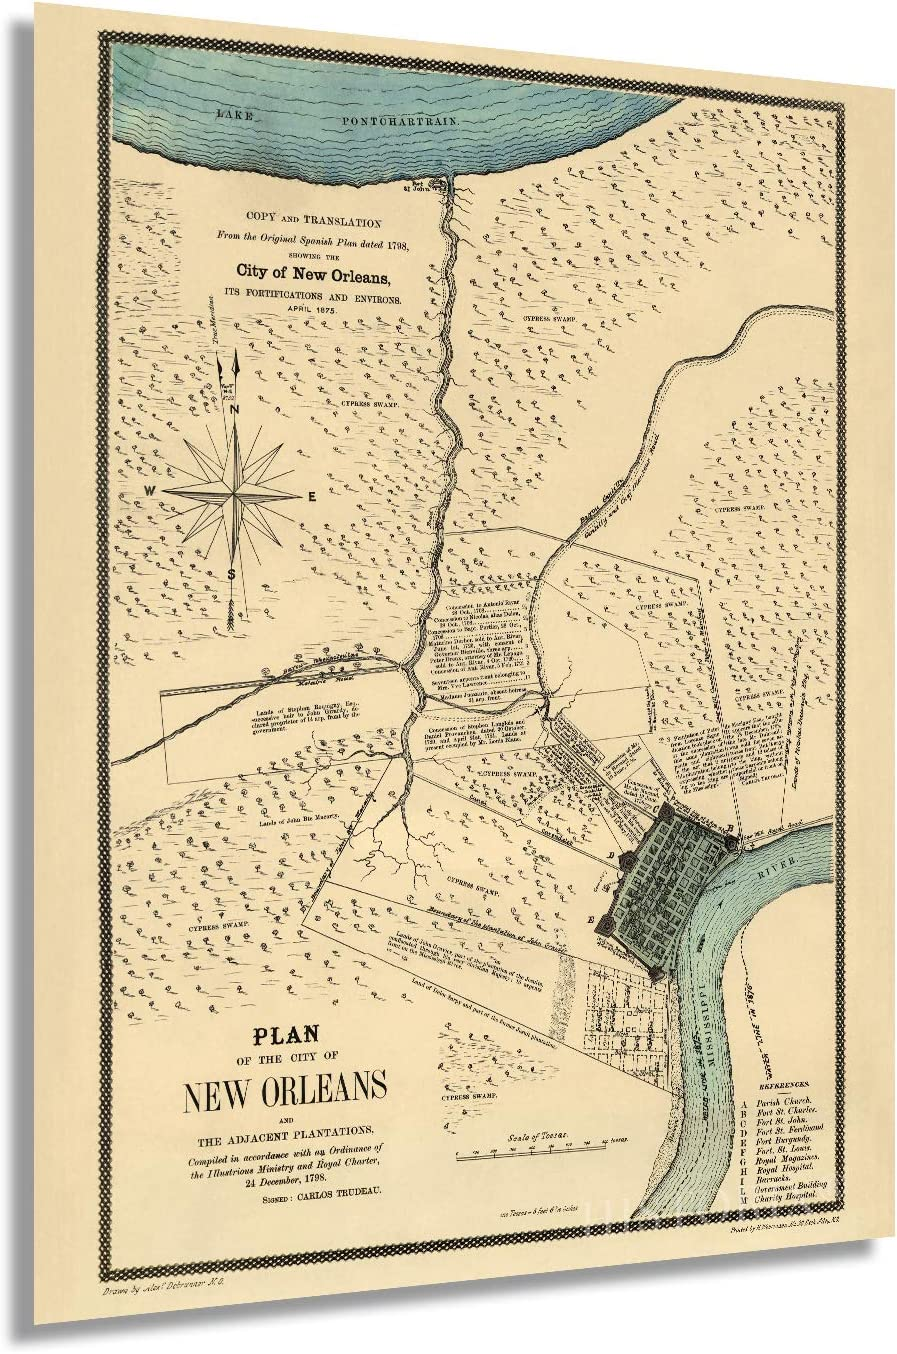 Historix Vintage 1875 New Orleans Louisiana Map - 18x24 Inch Vintage Map of New Orleans Translated from the Original Spanish Plan Dated 1798 - New Orleans Art Wall Decor Poster Print (2 Sizes)